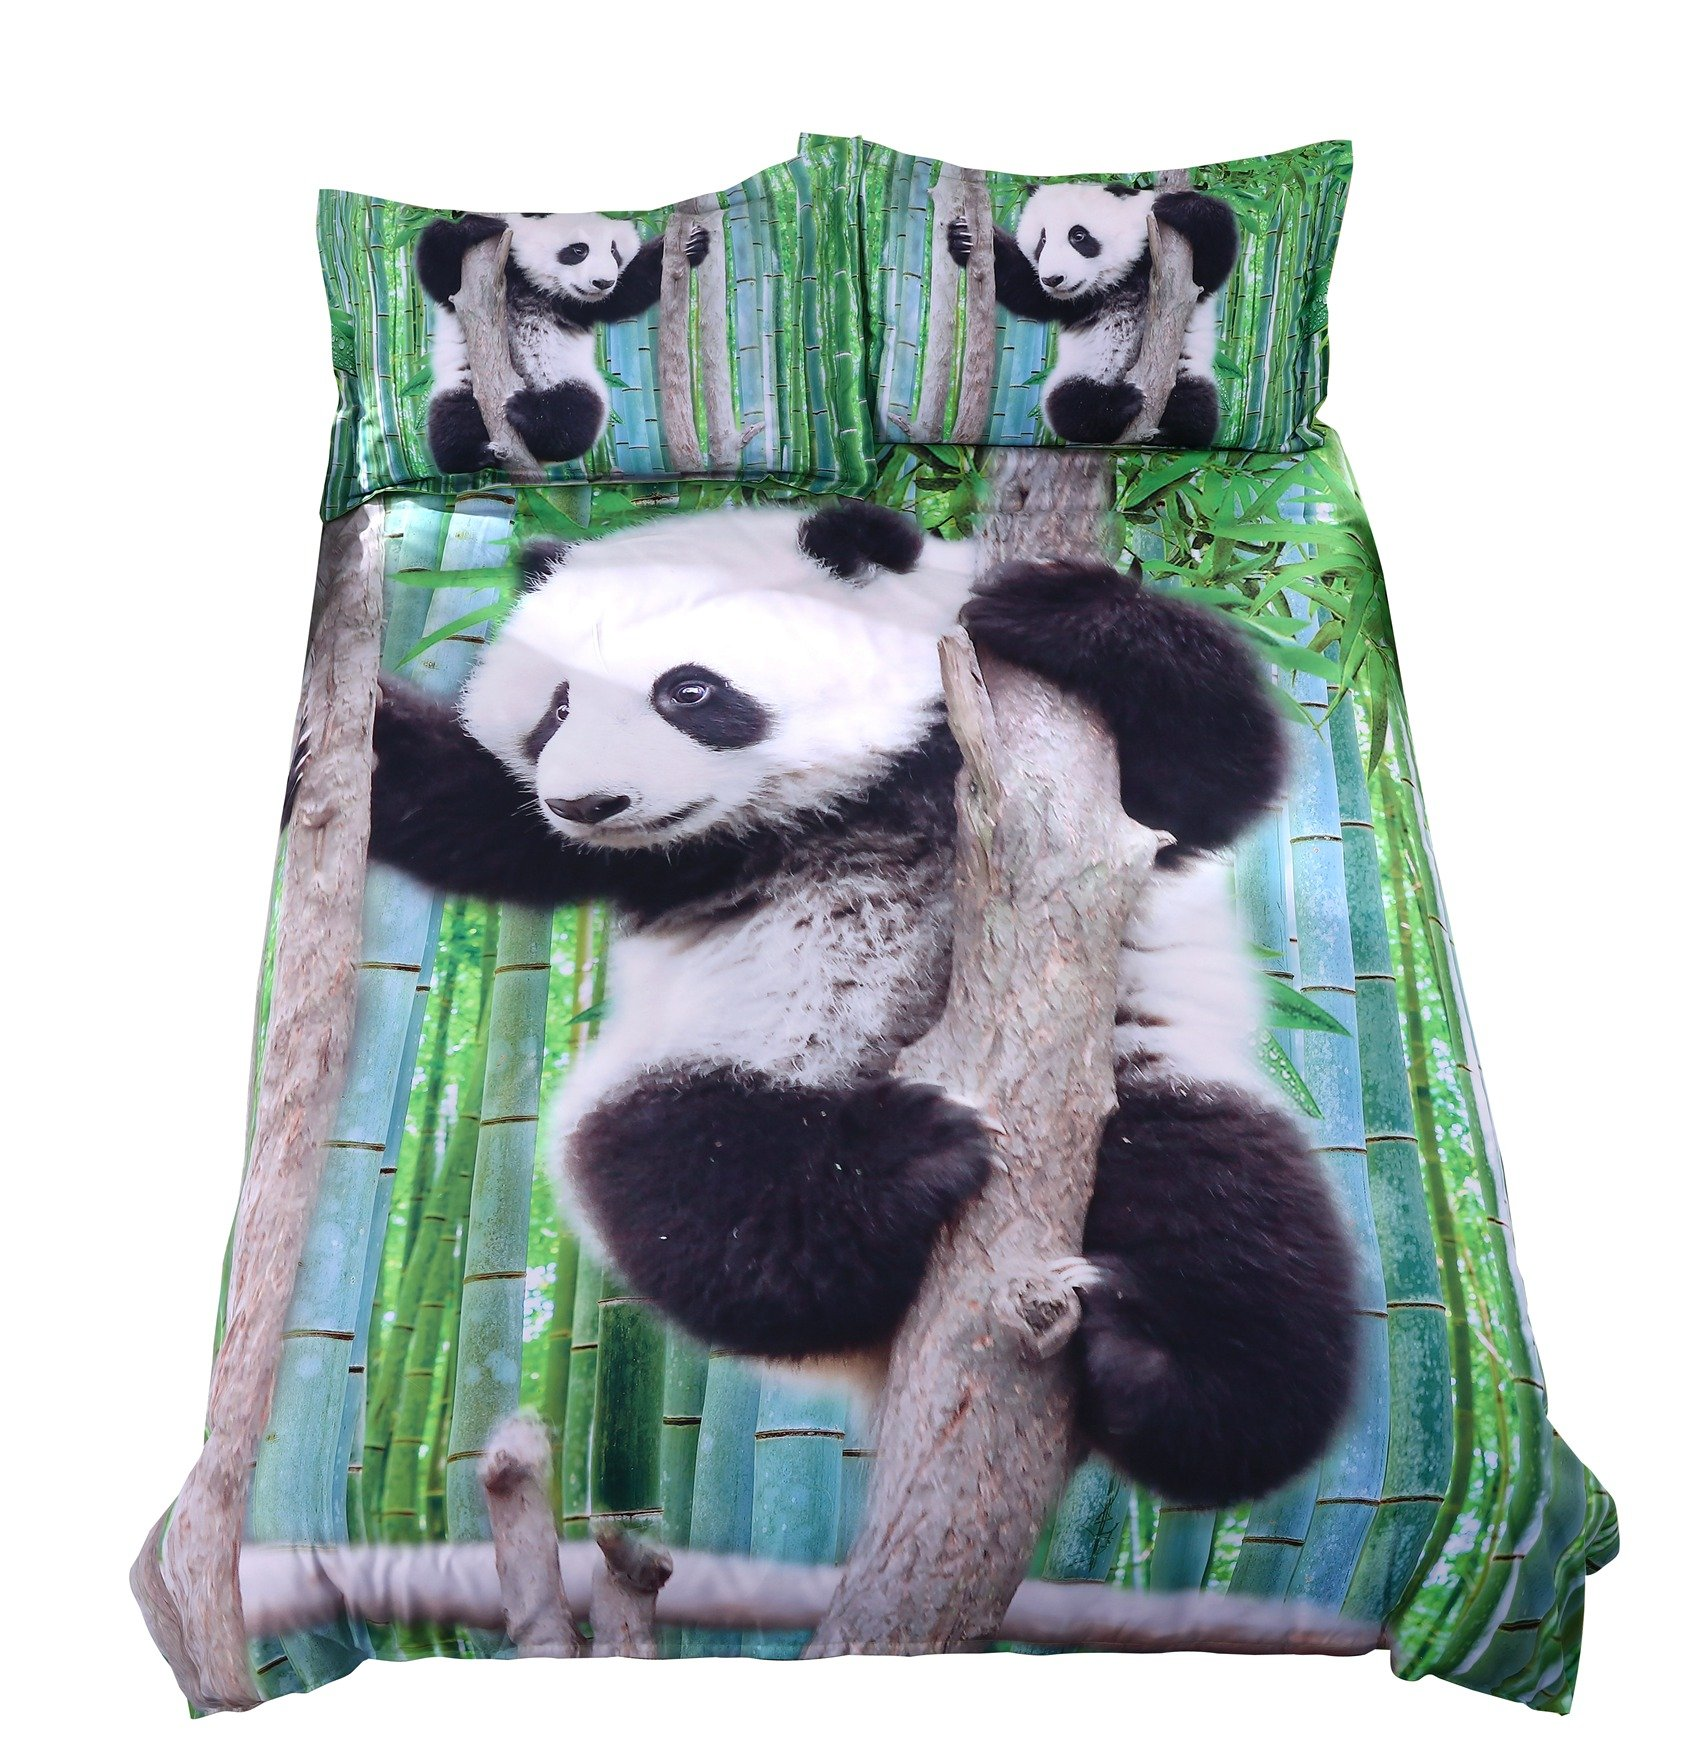 Alicemall 3D Panda Bedding Cute Panda Climbing the Tree Green Bamboo Prints Duvet Cover Set, 4 Pieces Soft Bedroom Sheets Set, Twin Size Kids' Bedding (Twin, Panda on a Branch)